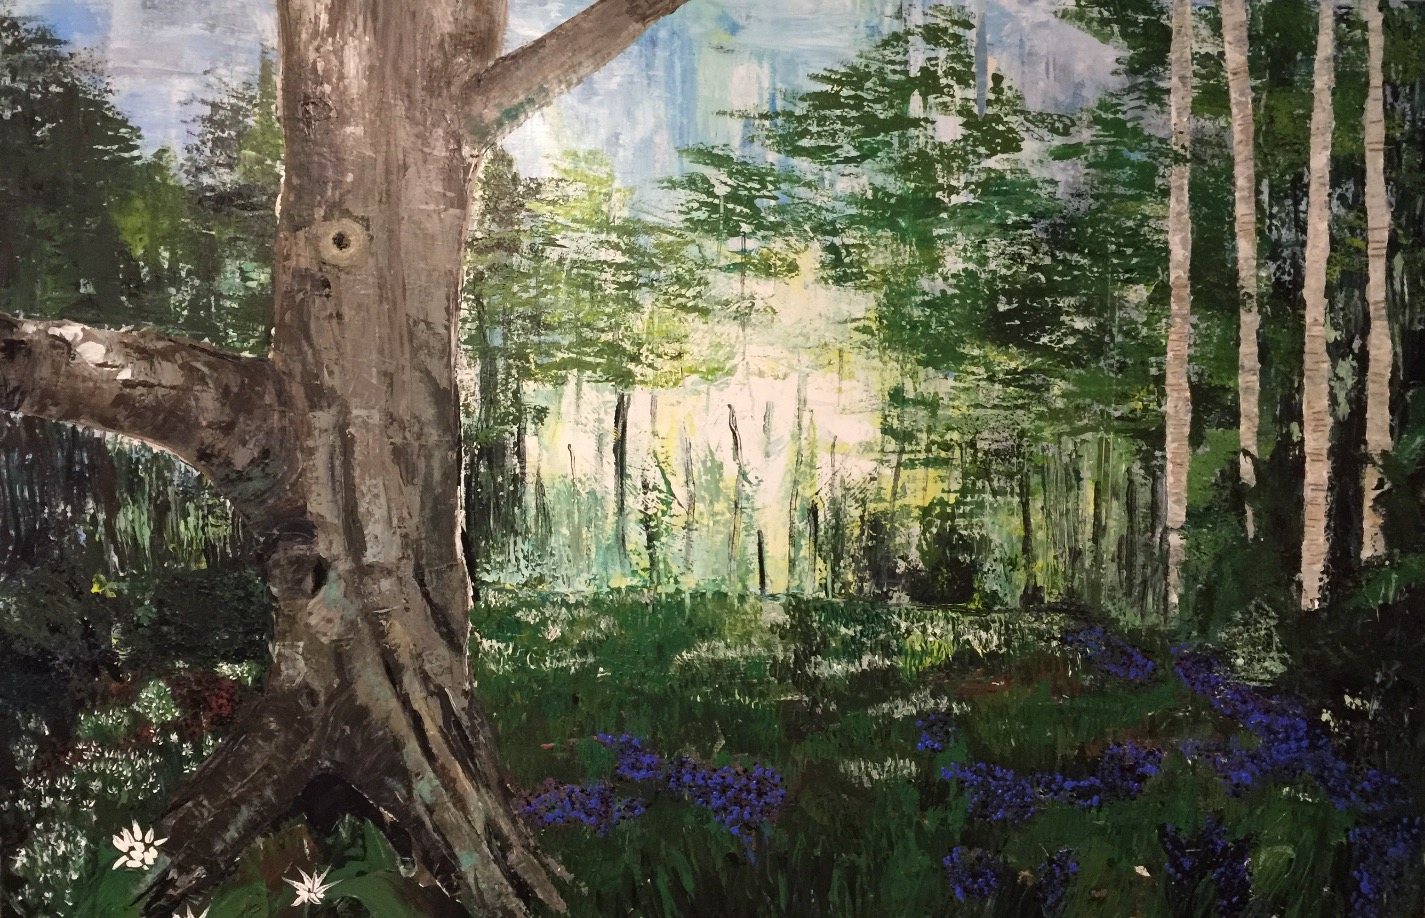 The beech tree by Tina Scahill